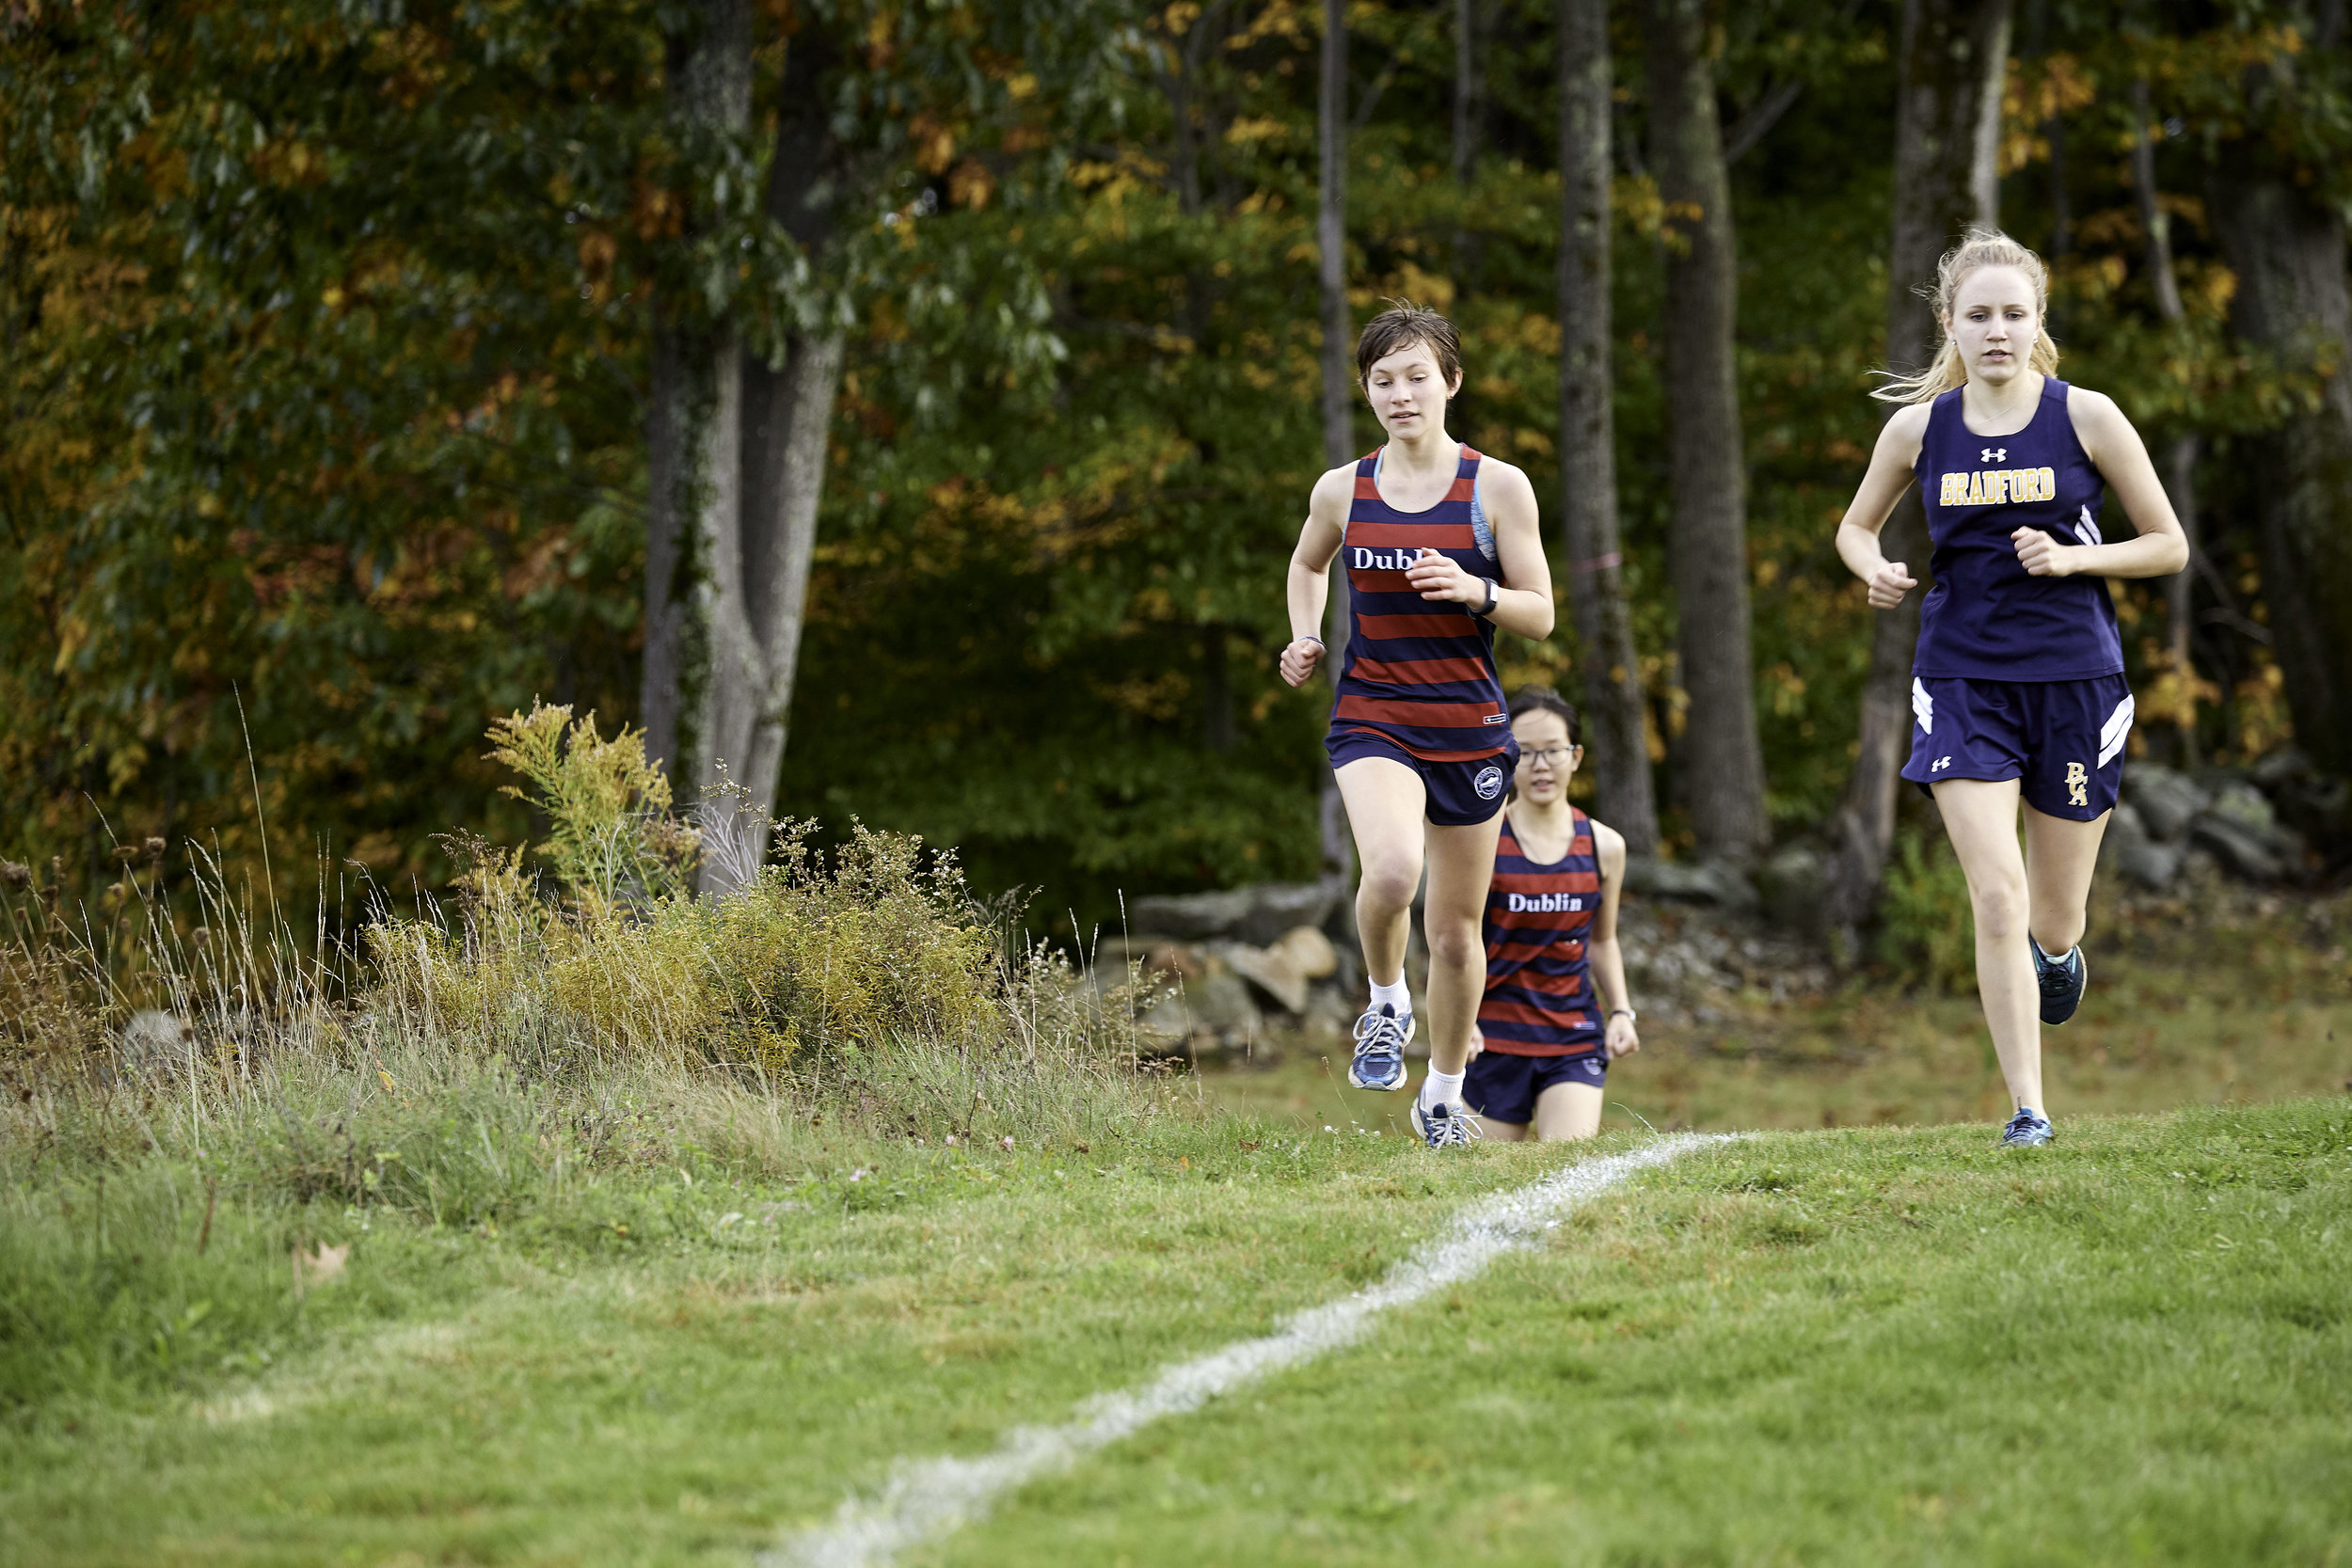 Dublion Invitational - October 12, 2018 - 136533.jpg